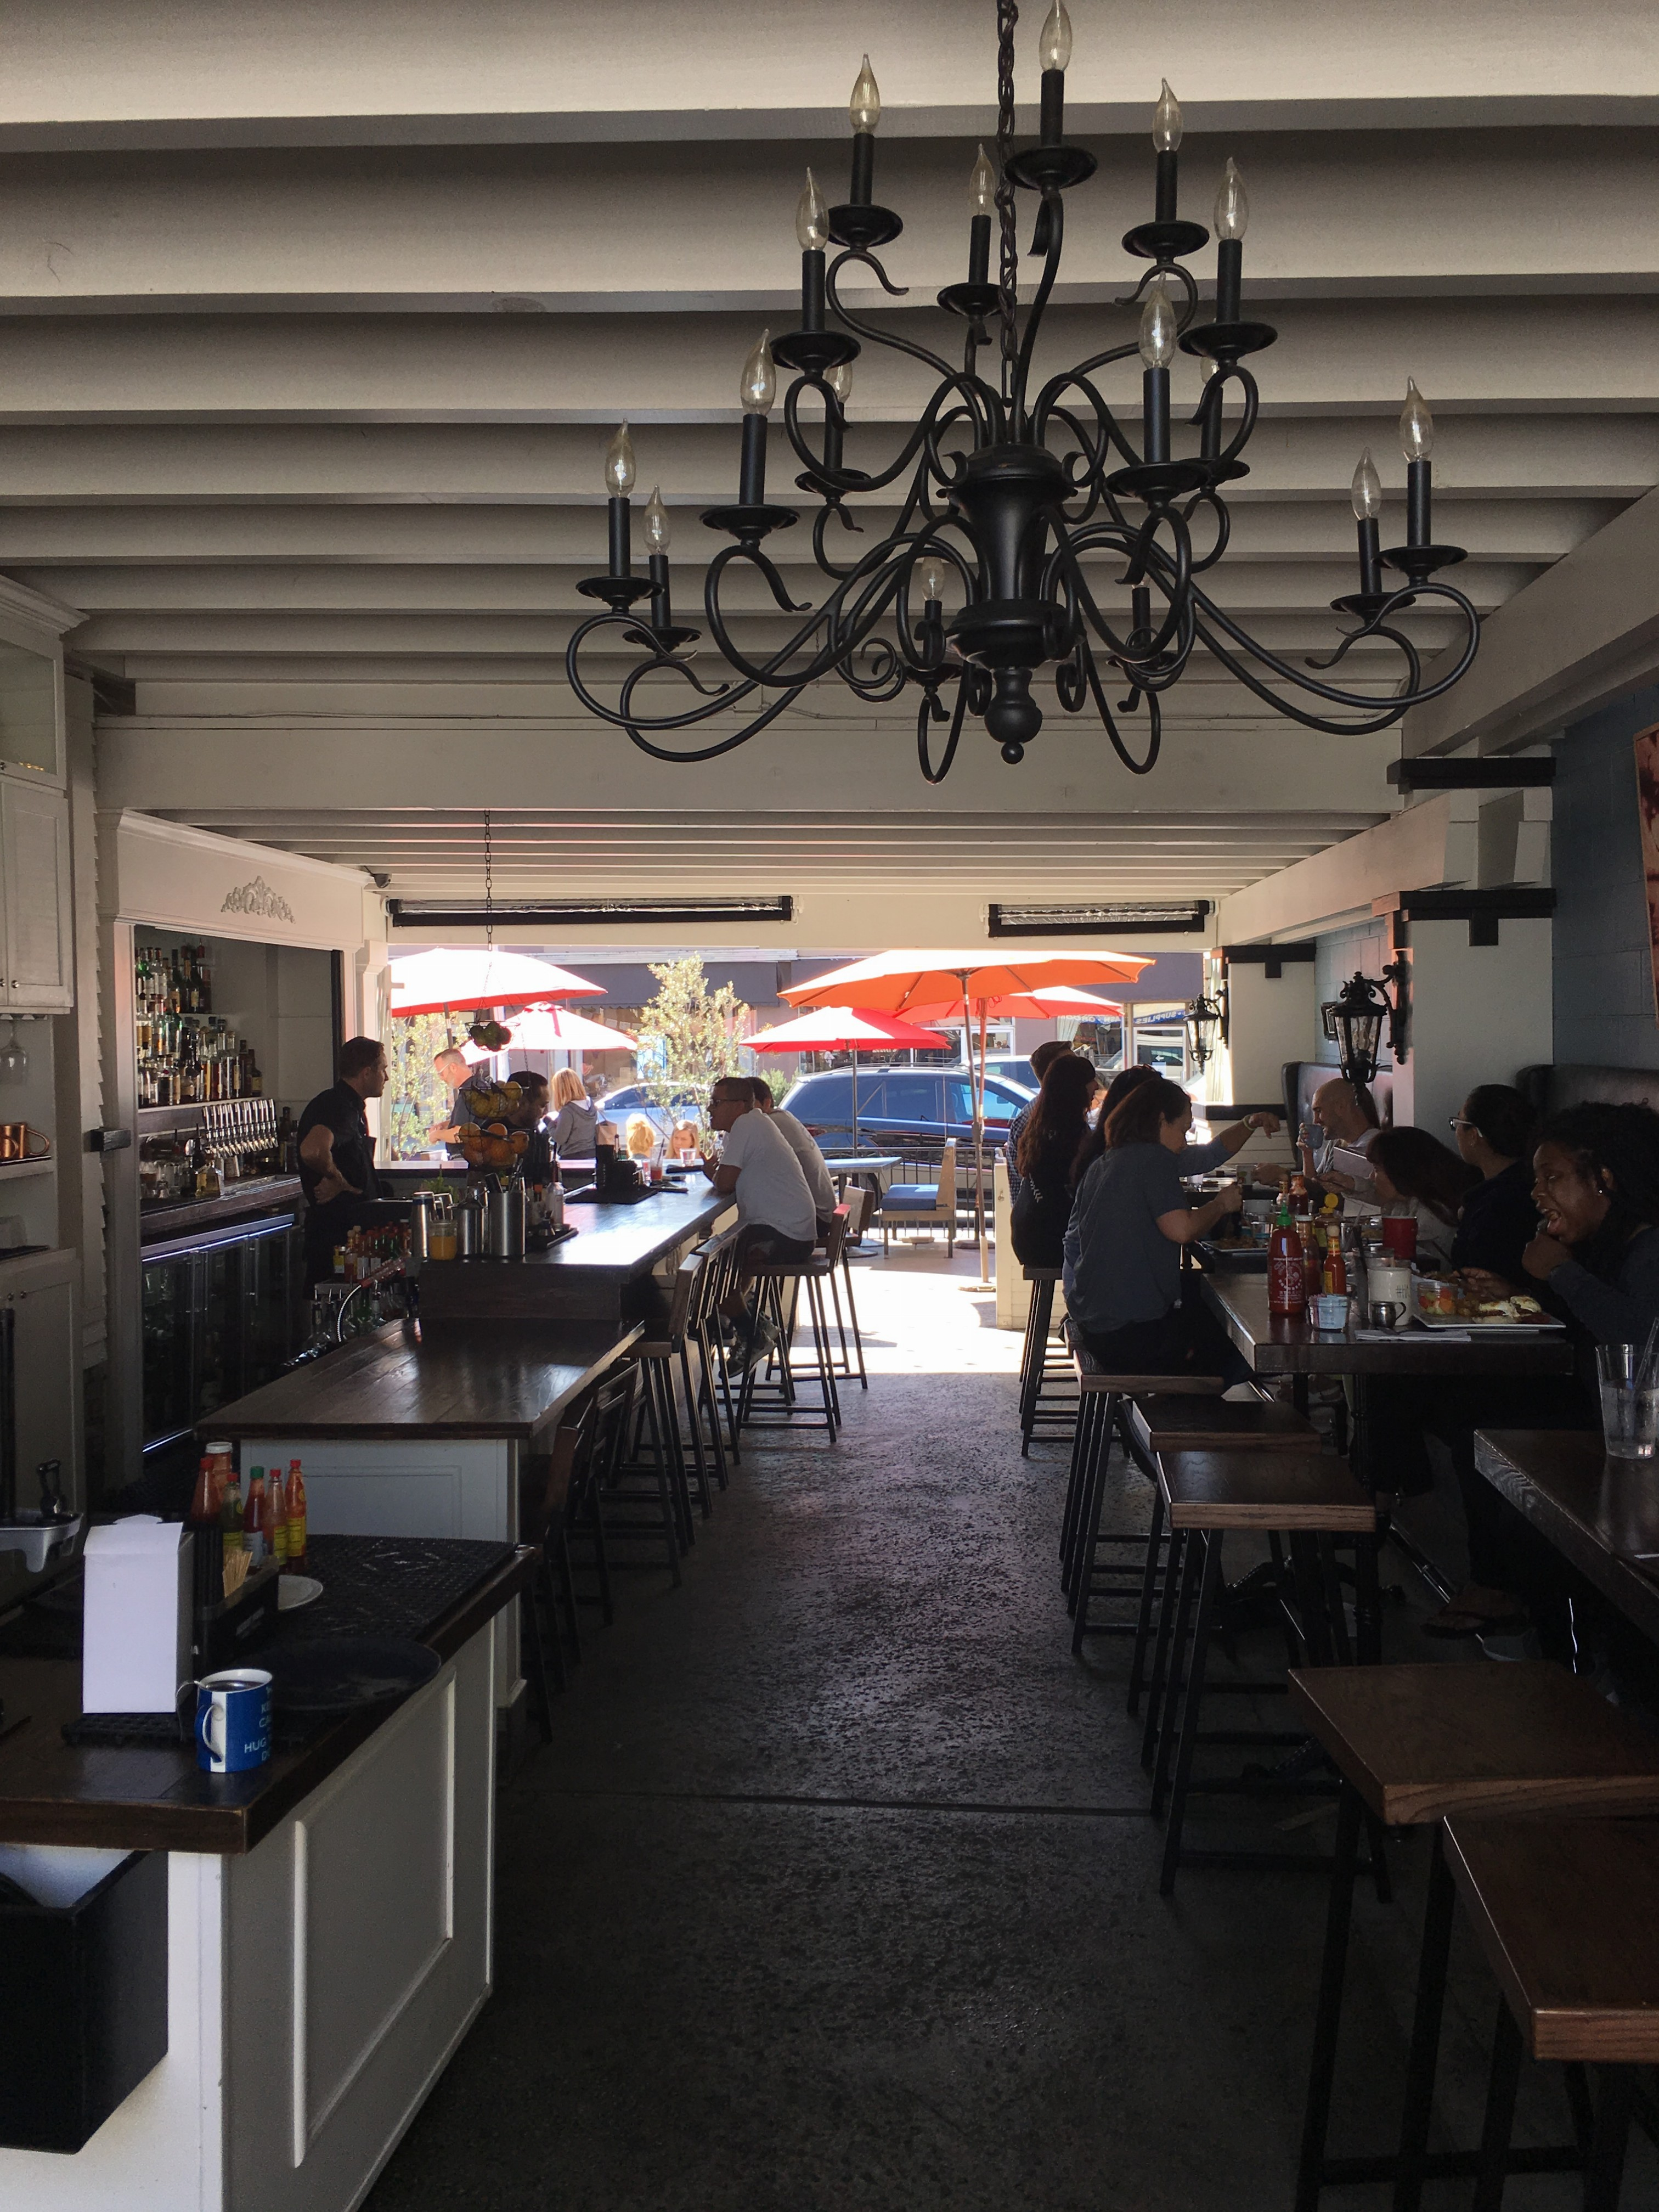 The Attic On Broadway Is A Restaurant That Sits Inside 1920s Era Craftsman Cottage Owned By Steve Mis And It One Of Few Places In Long Beach